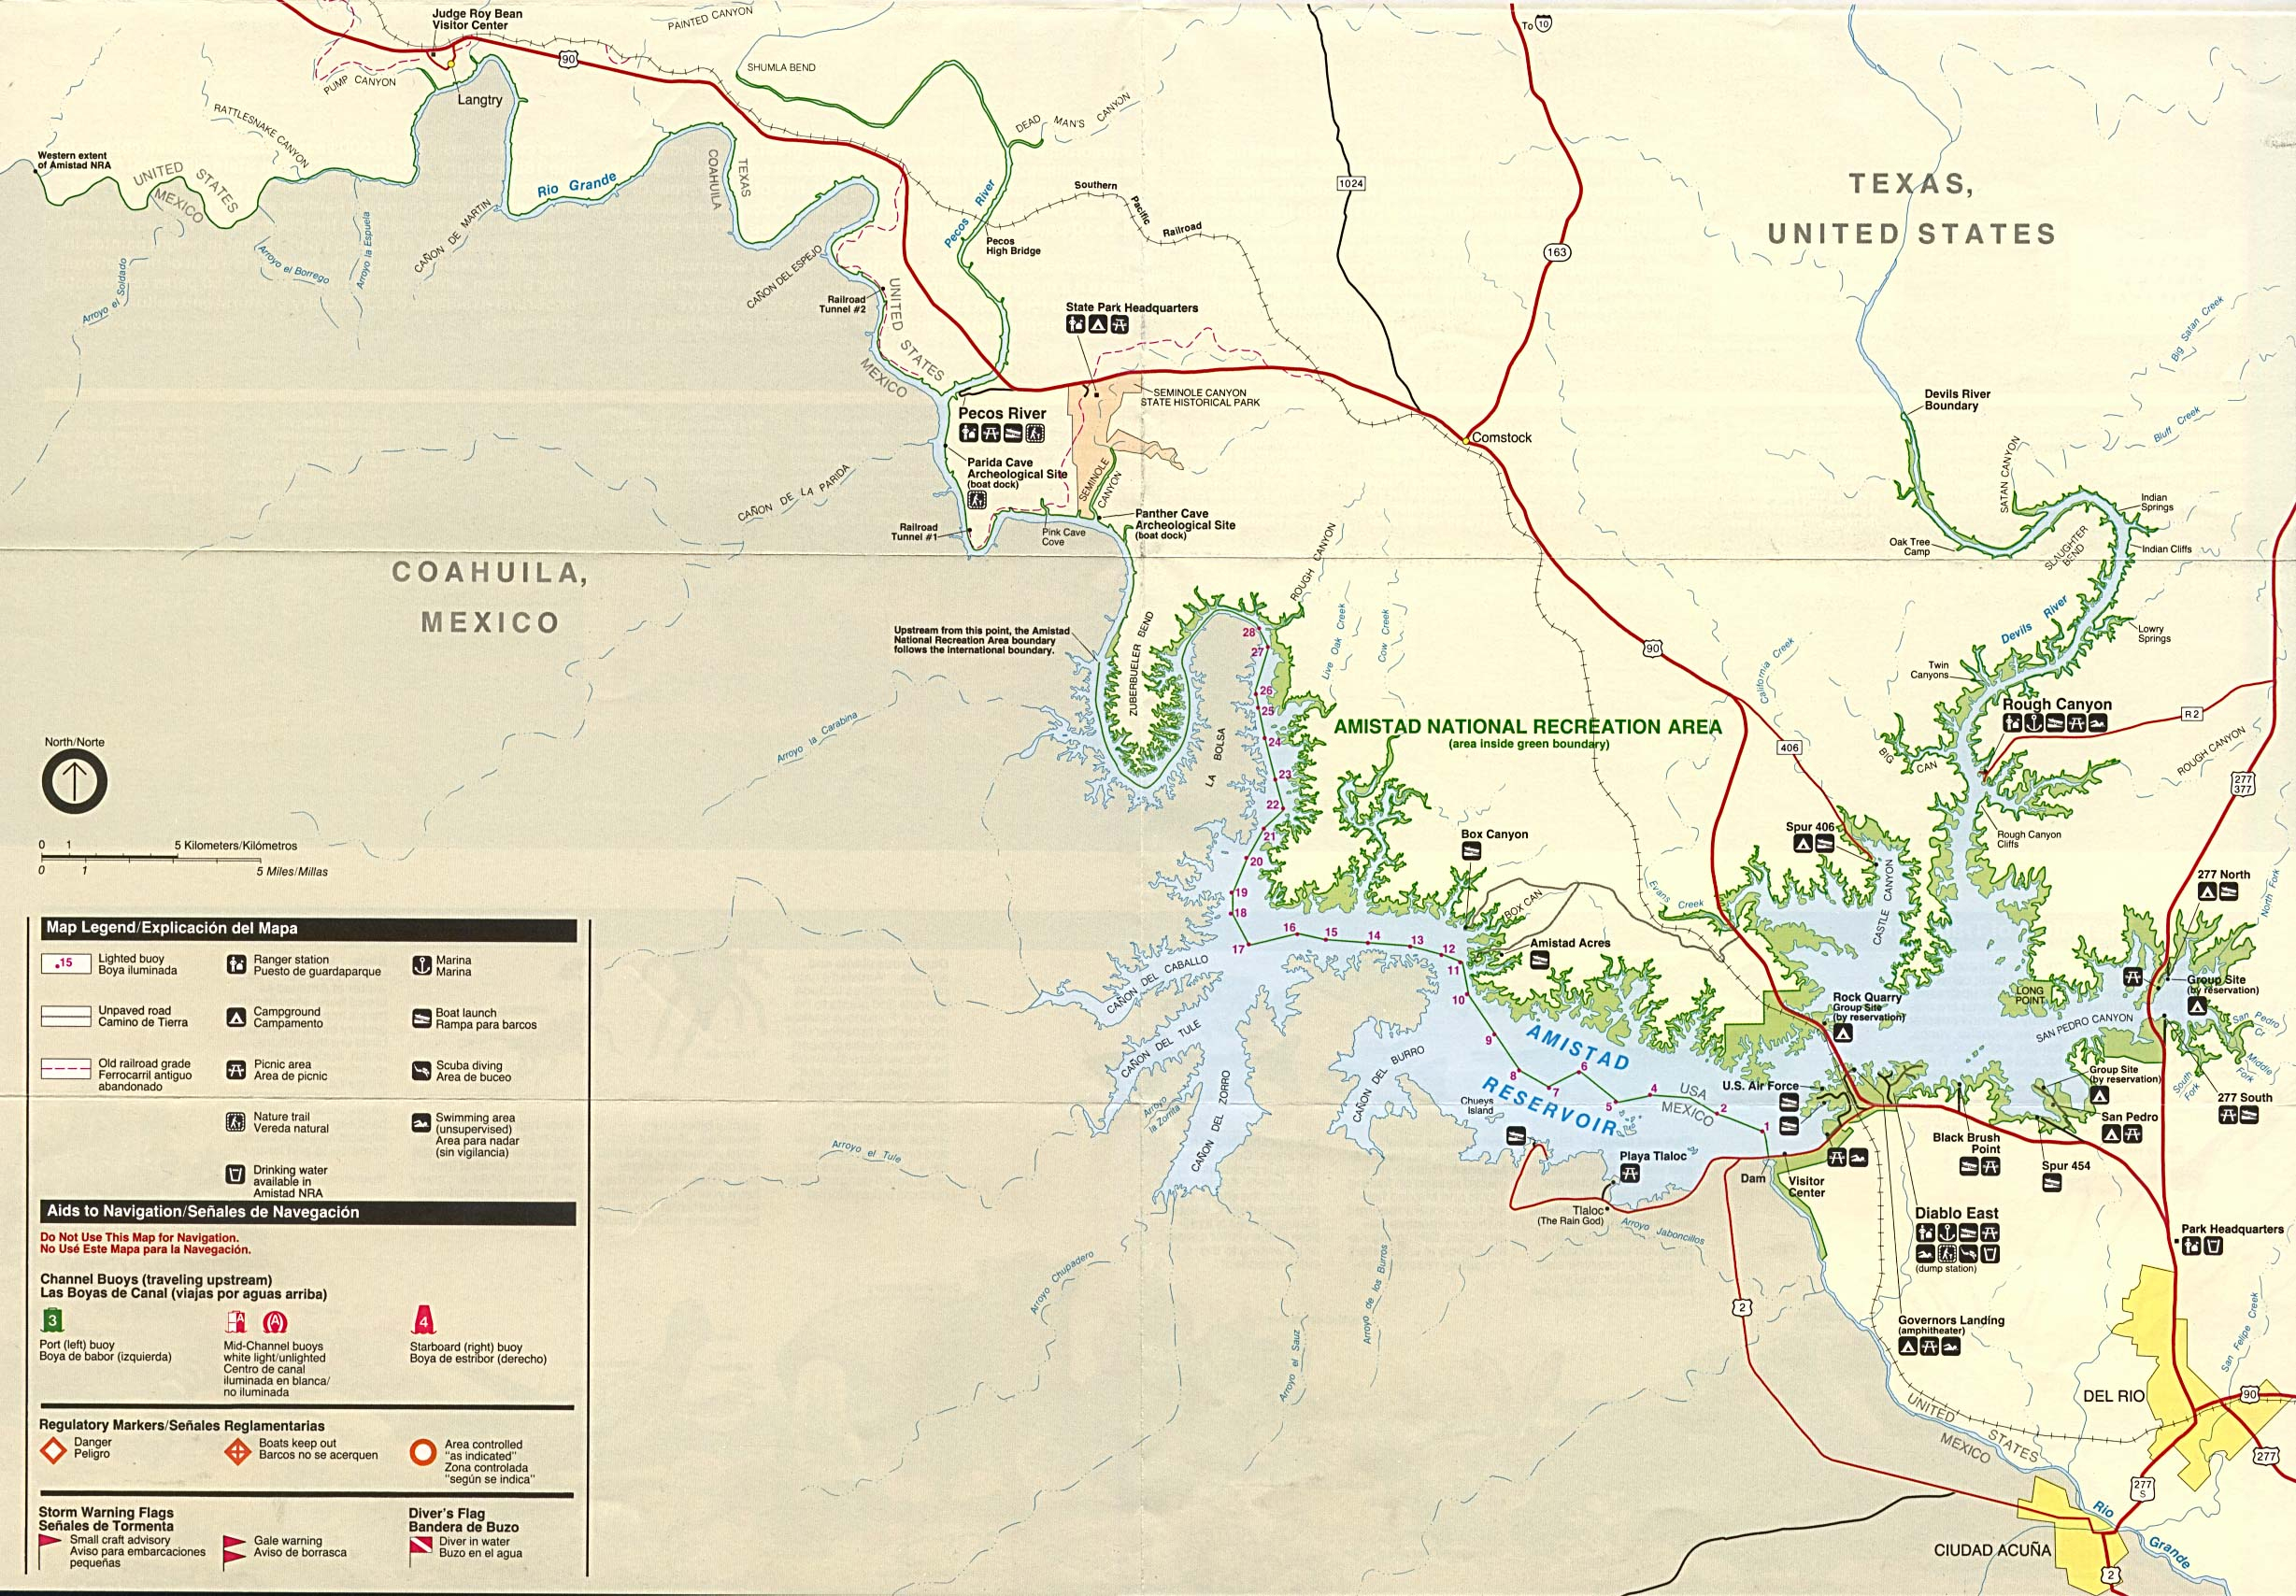 Texas State And National Park Maps - Perry-Castañeda Map Collection - Texas Hiking Trails Map